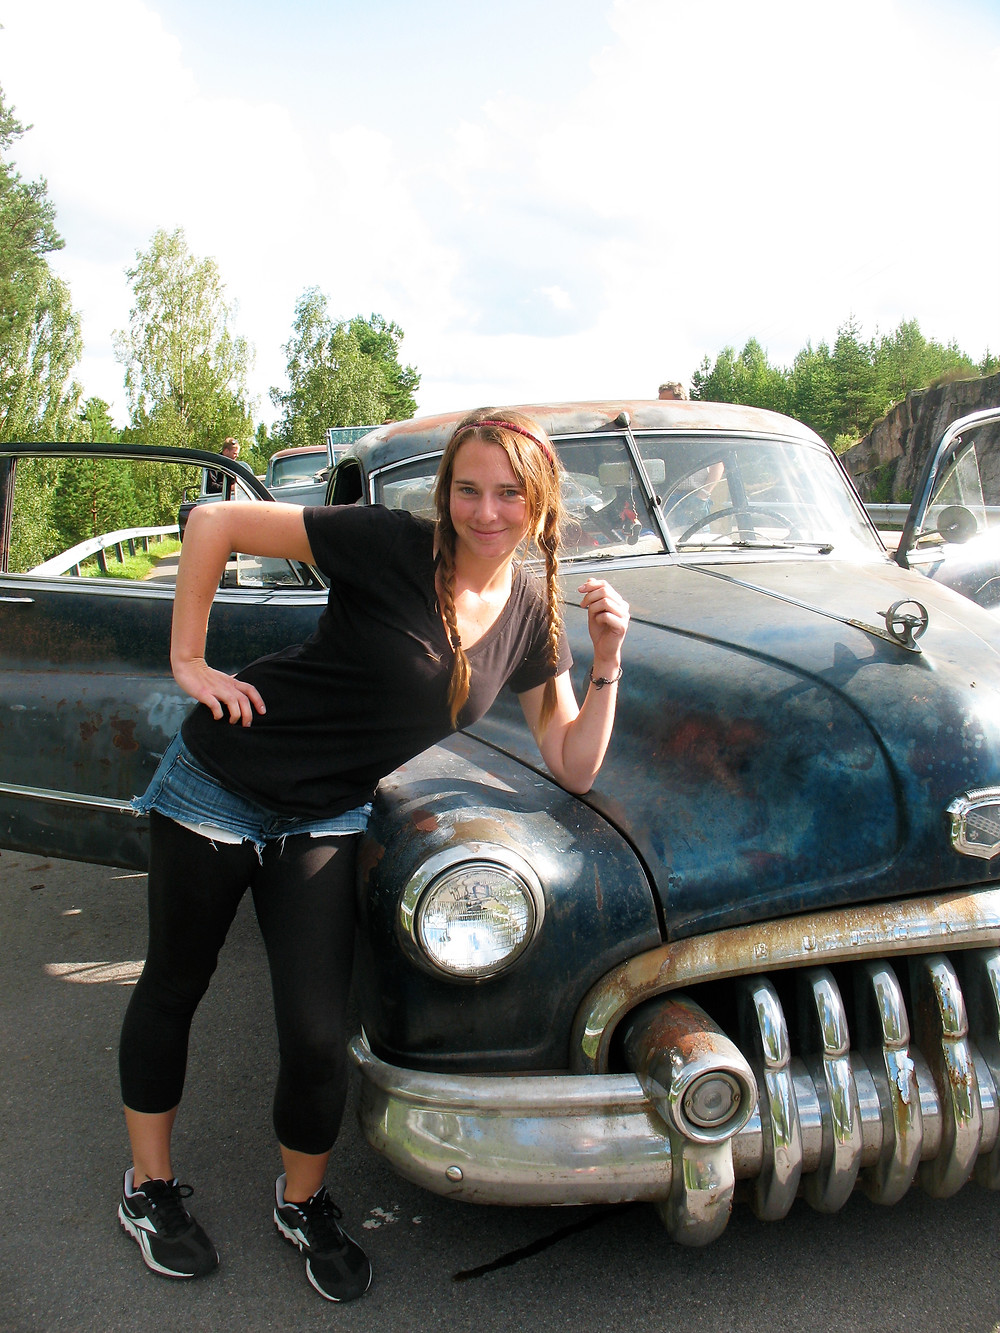 Valerie and 1947 Buick car